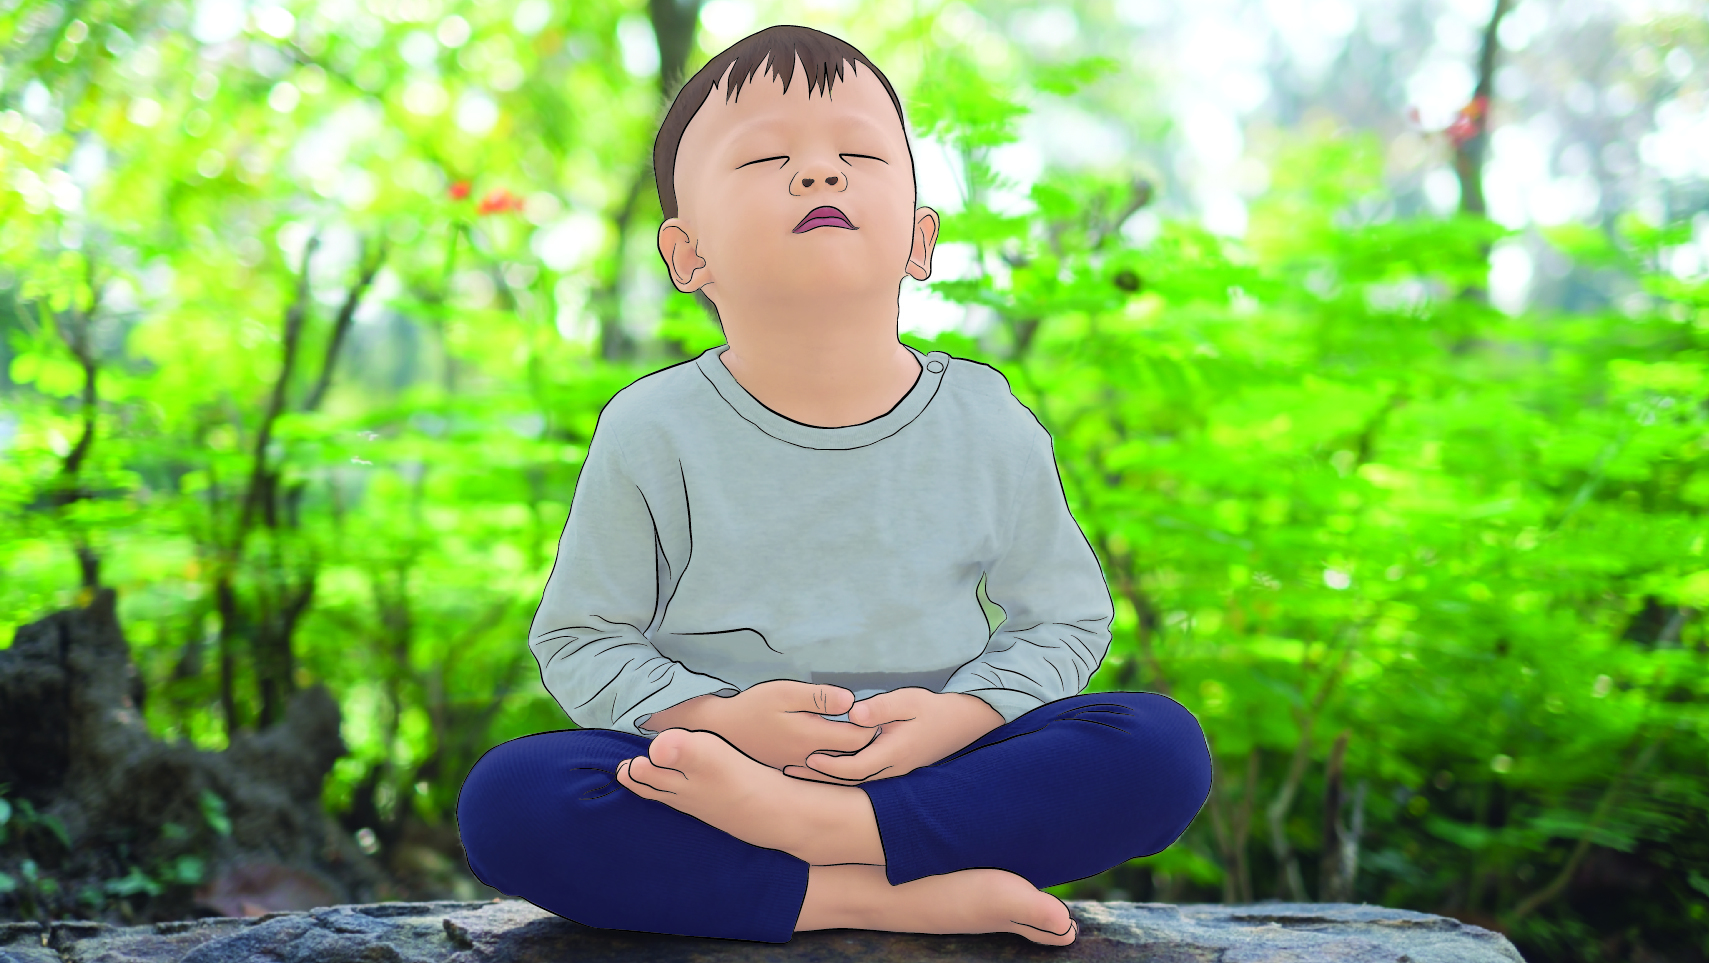 Very young boy with his eyes closed in meditation